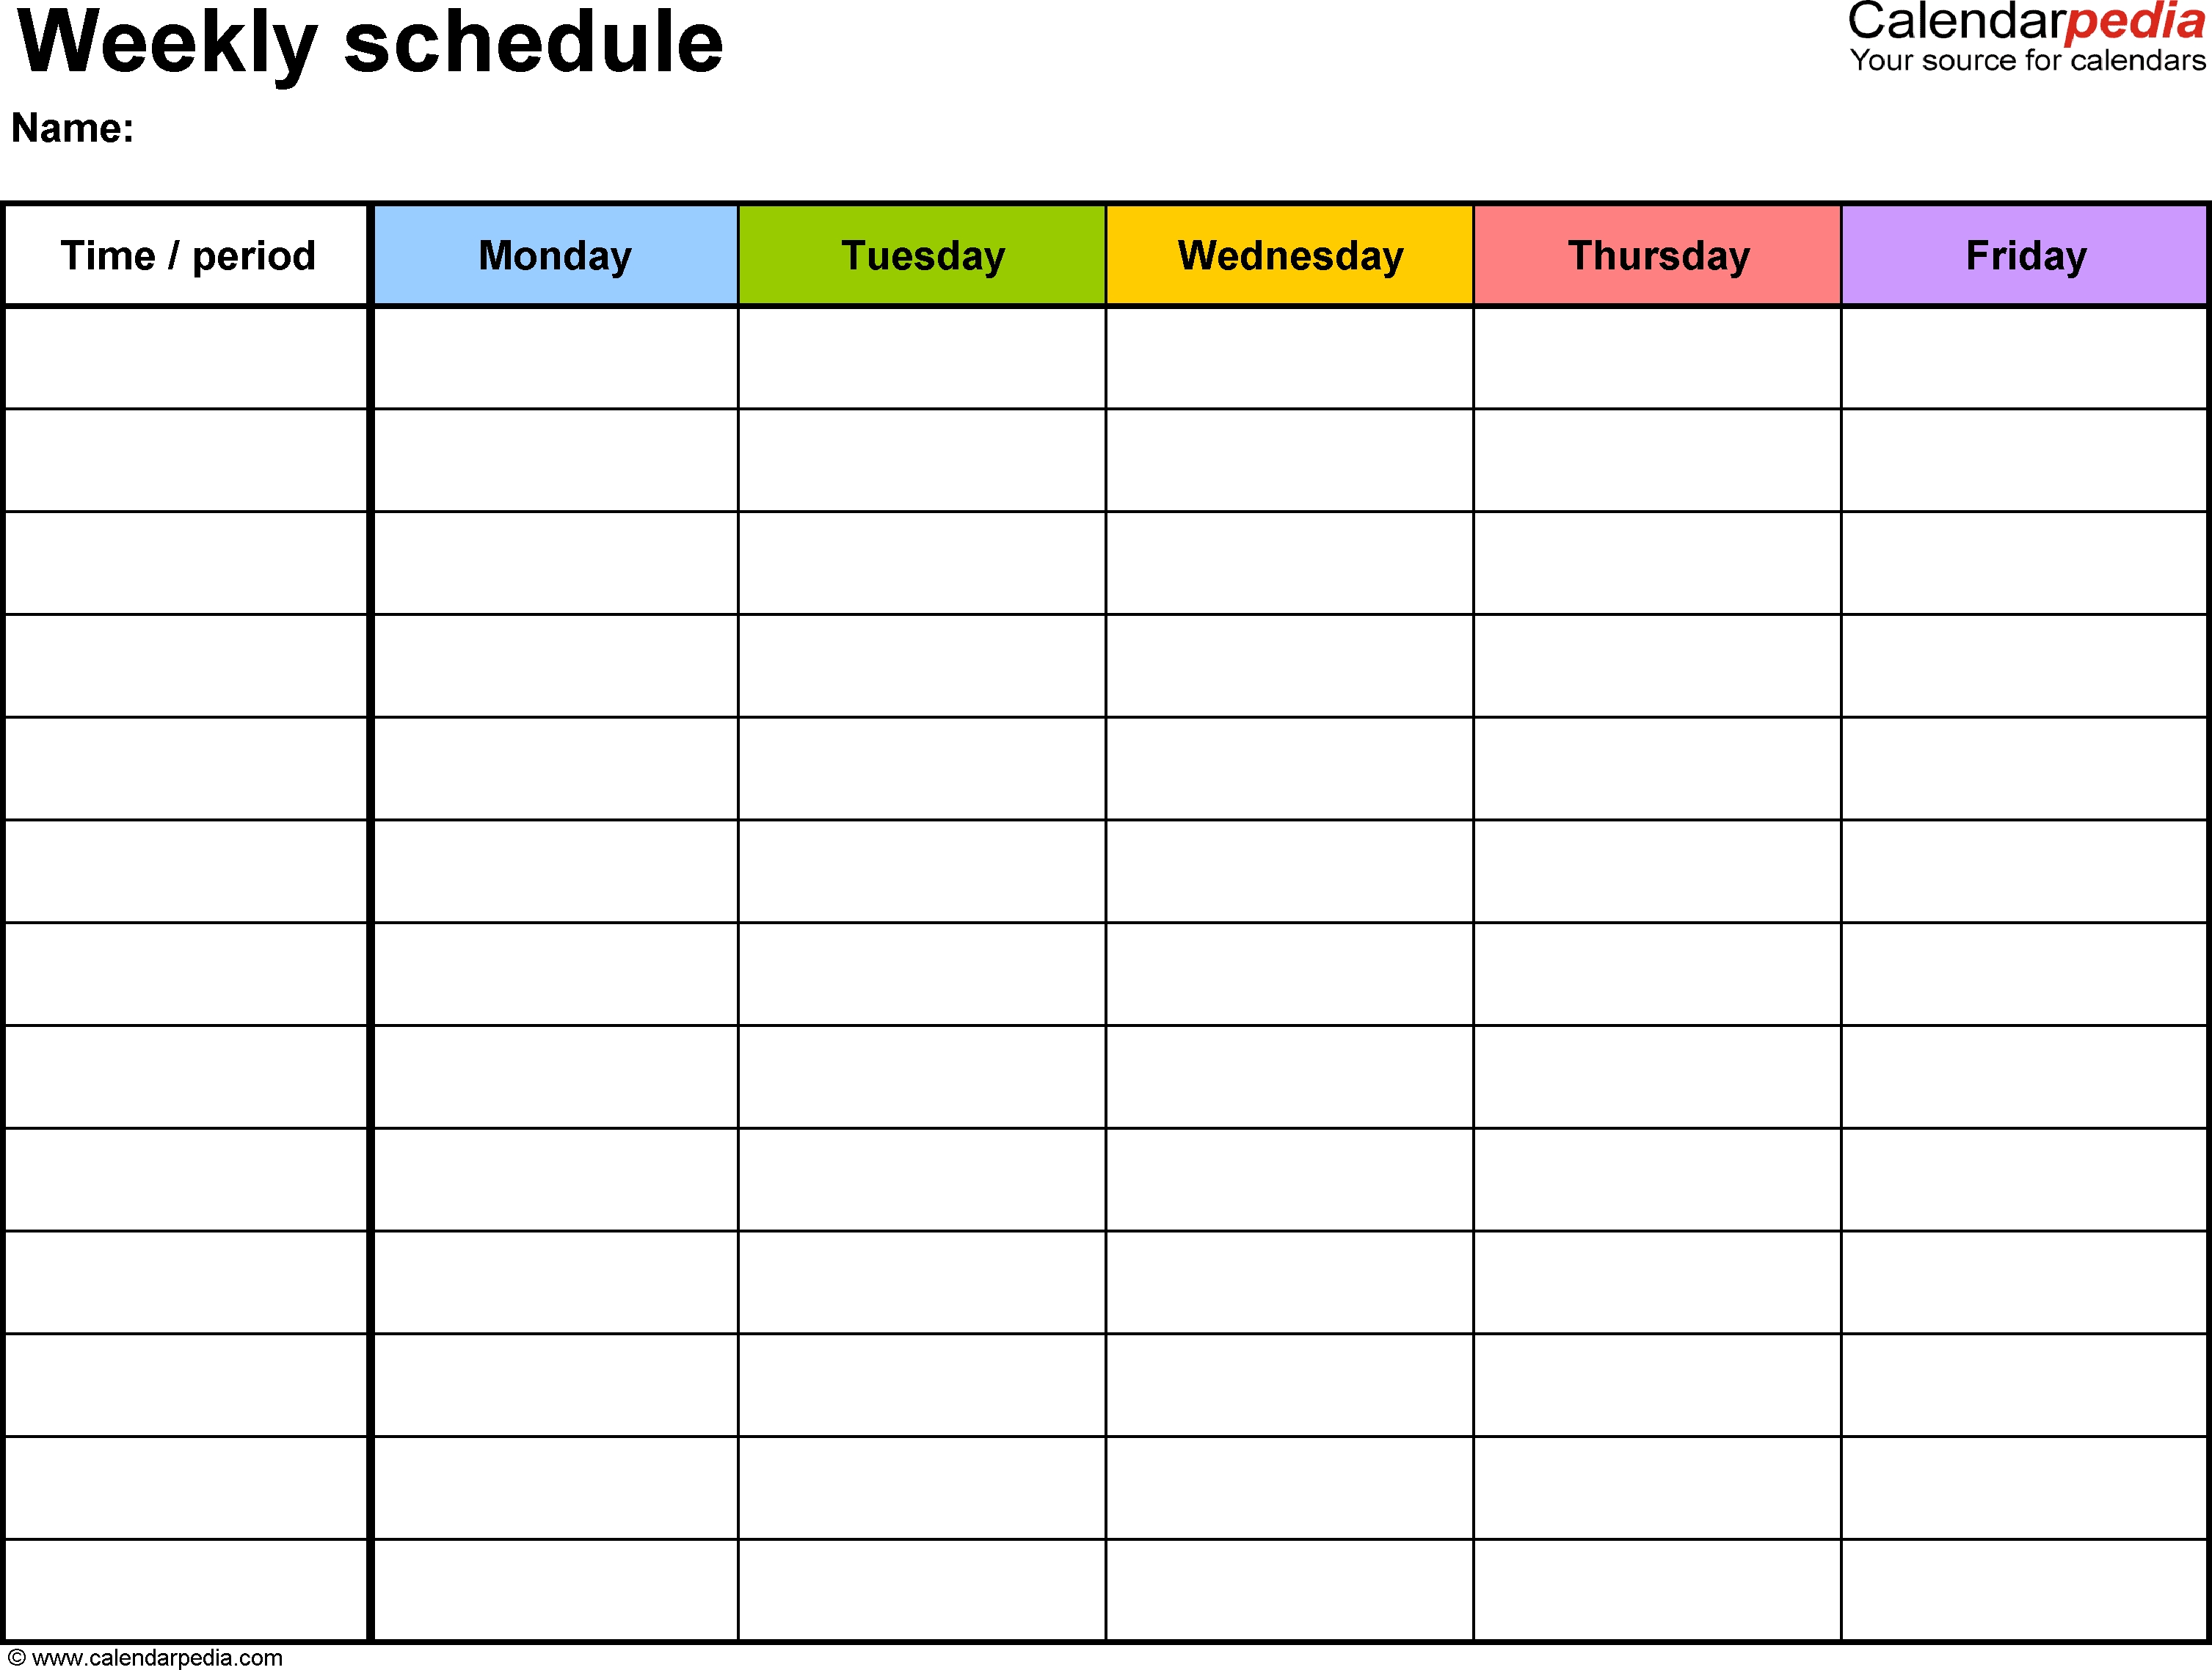 Free Weekly Schedule Templates For Word - 18 Templates Windows 7 Word Calendar Templates